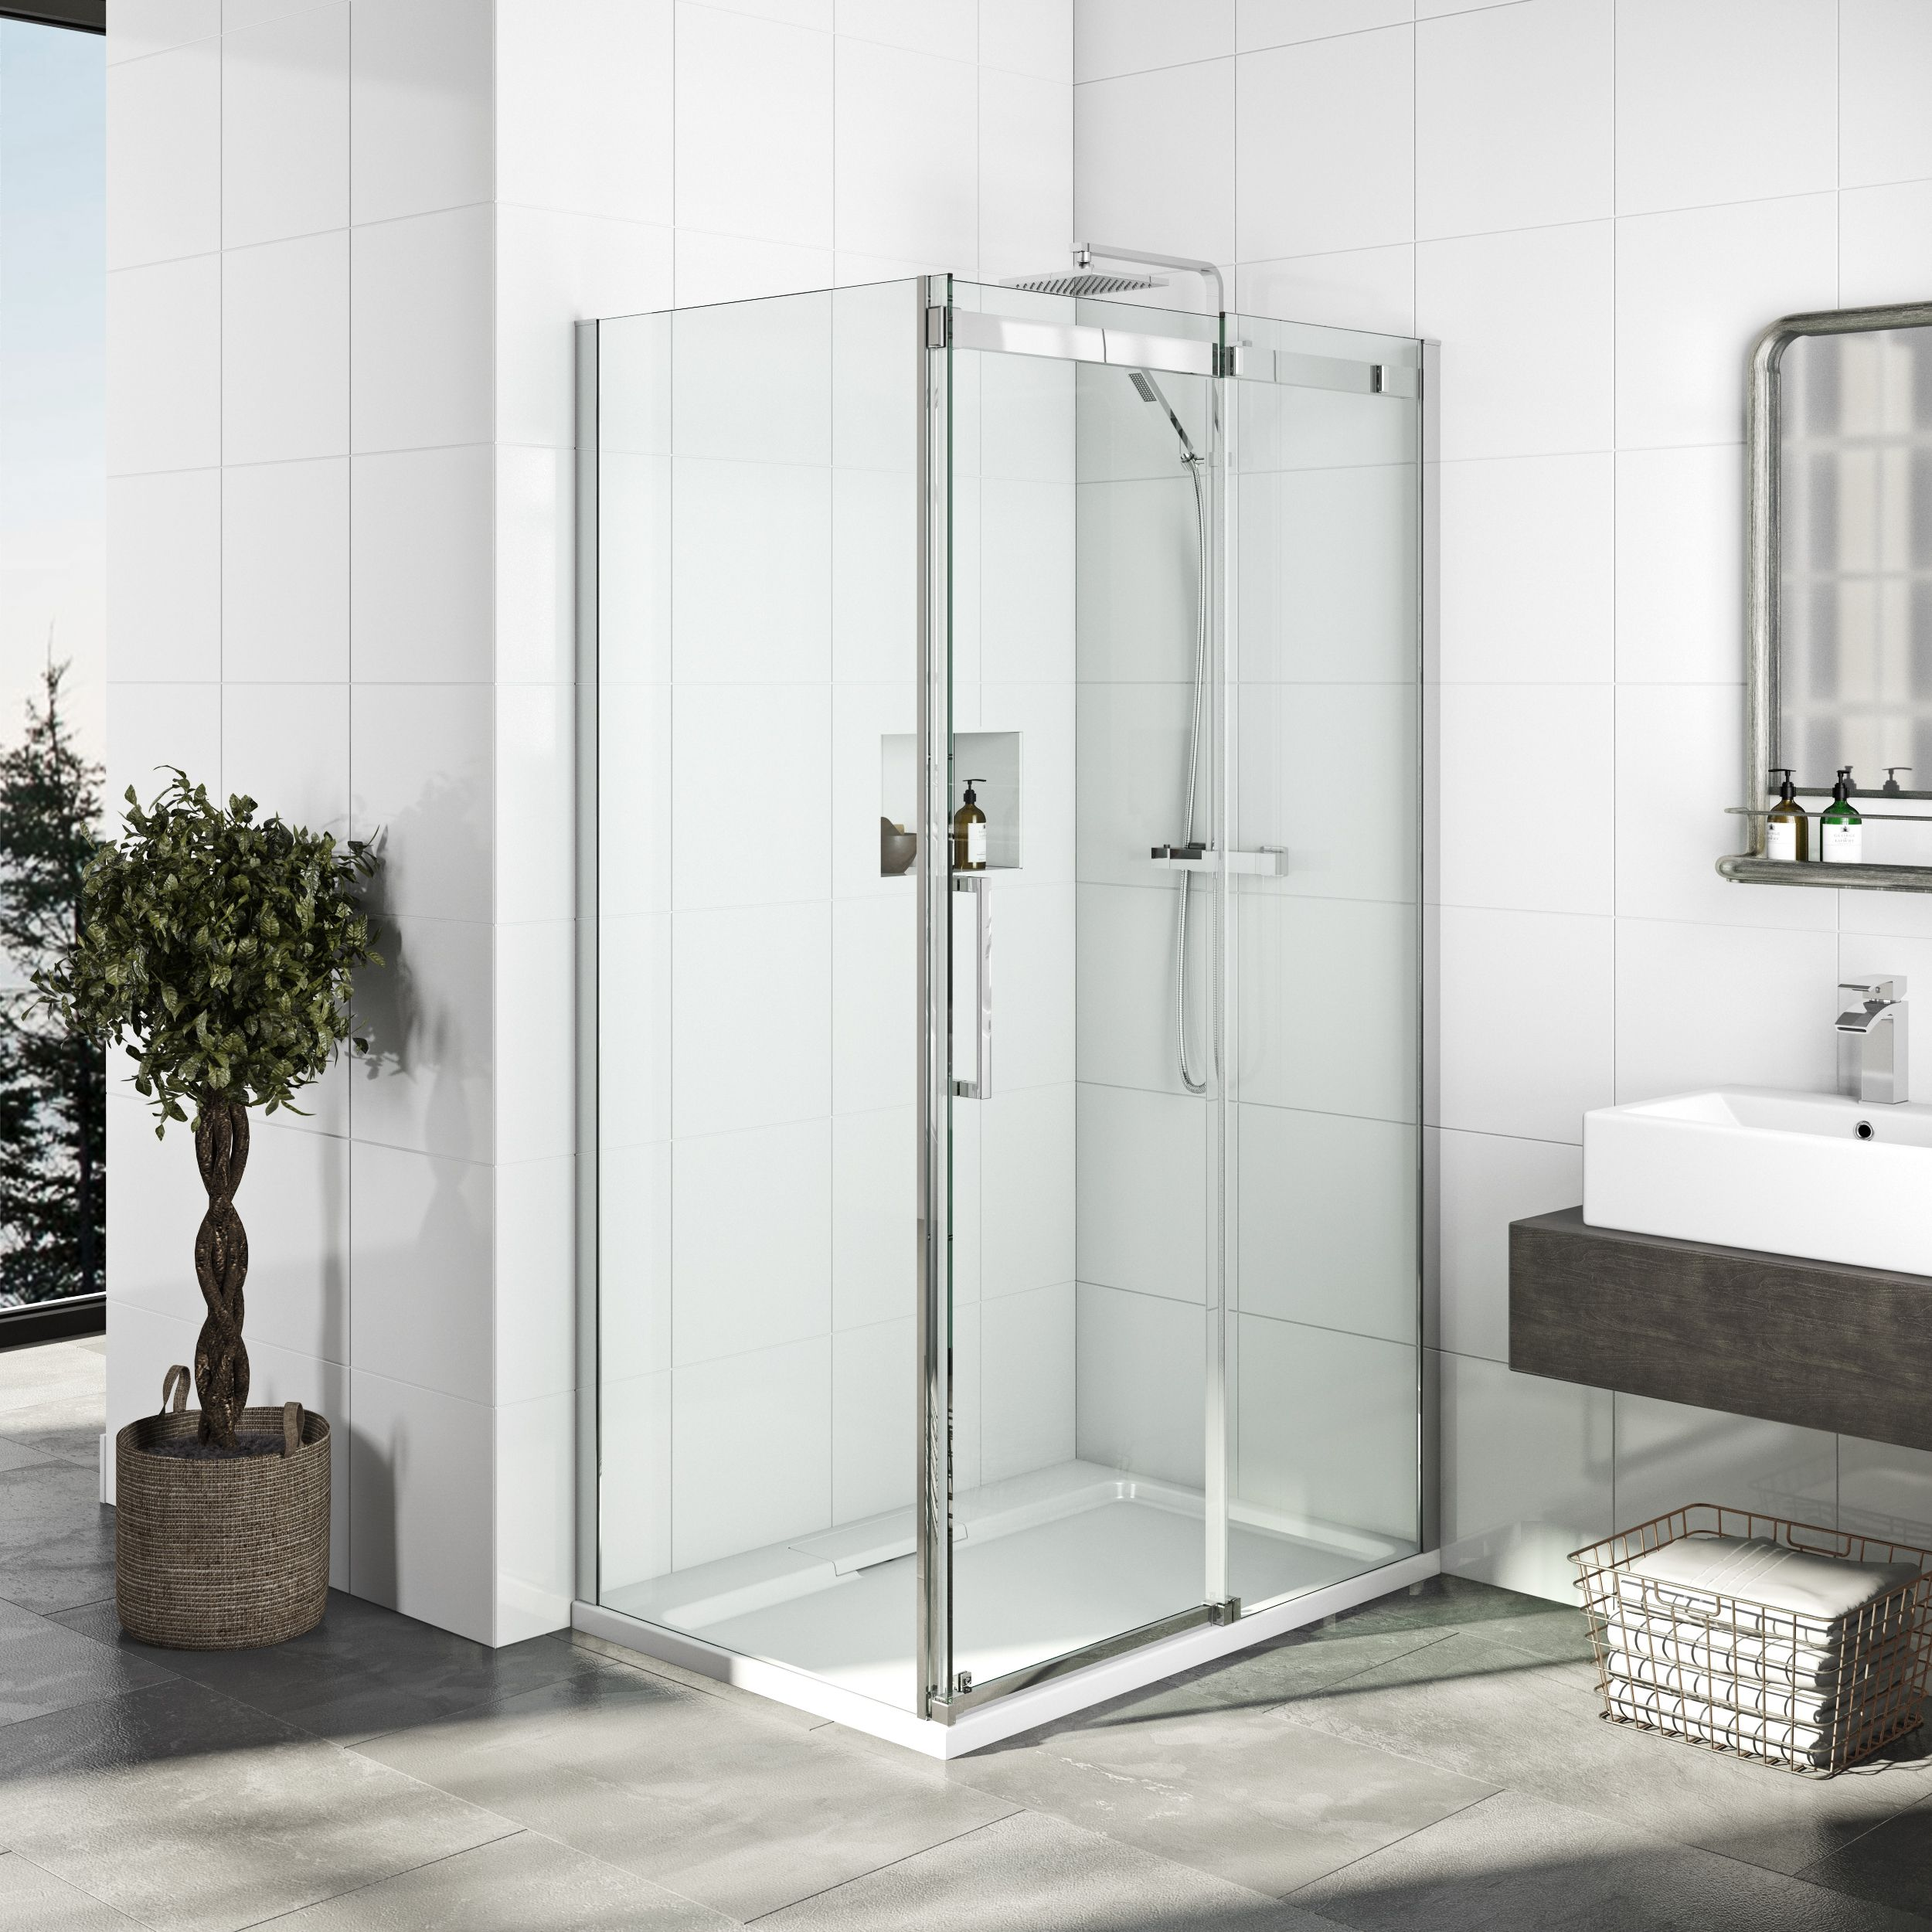 Mode Elite 10mm Frameless Shower Enclosure In 2020 Frameless Shower Enclosures Shower Enclosure Quadrant Shower